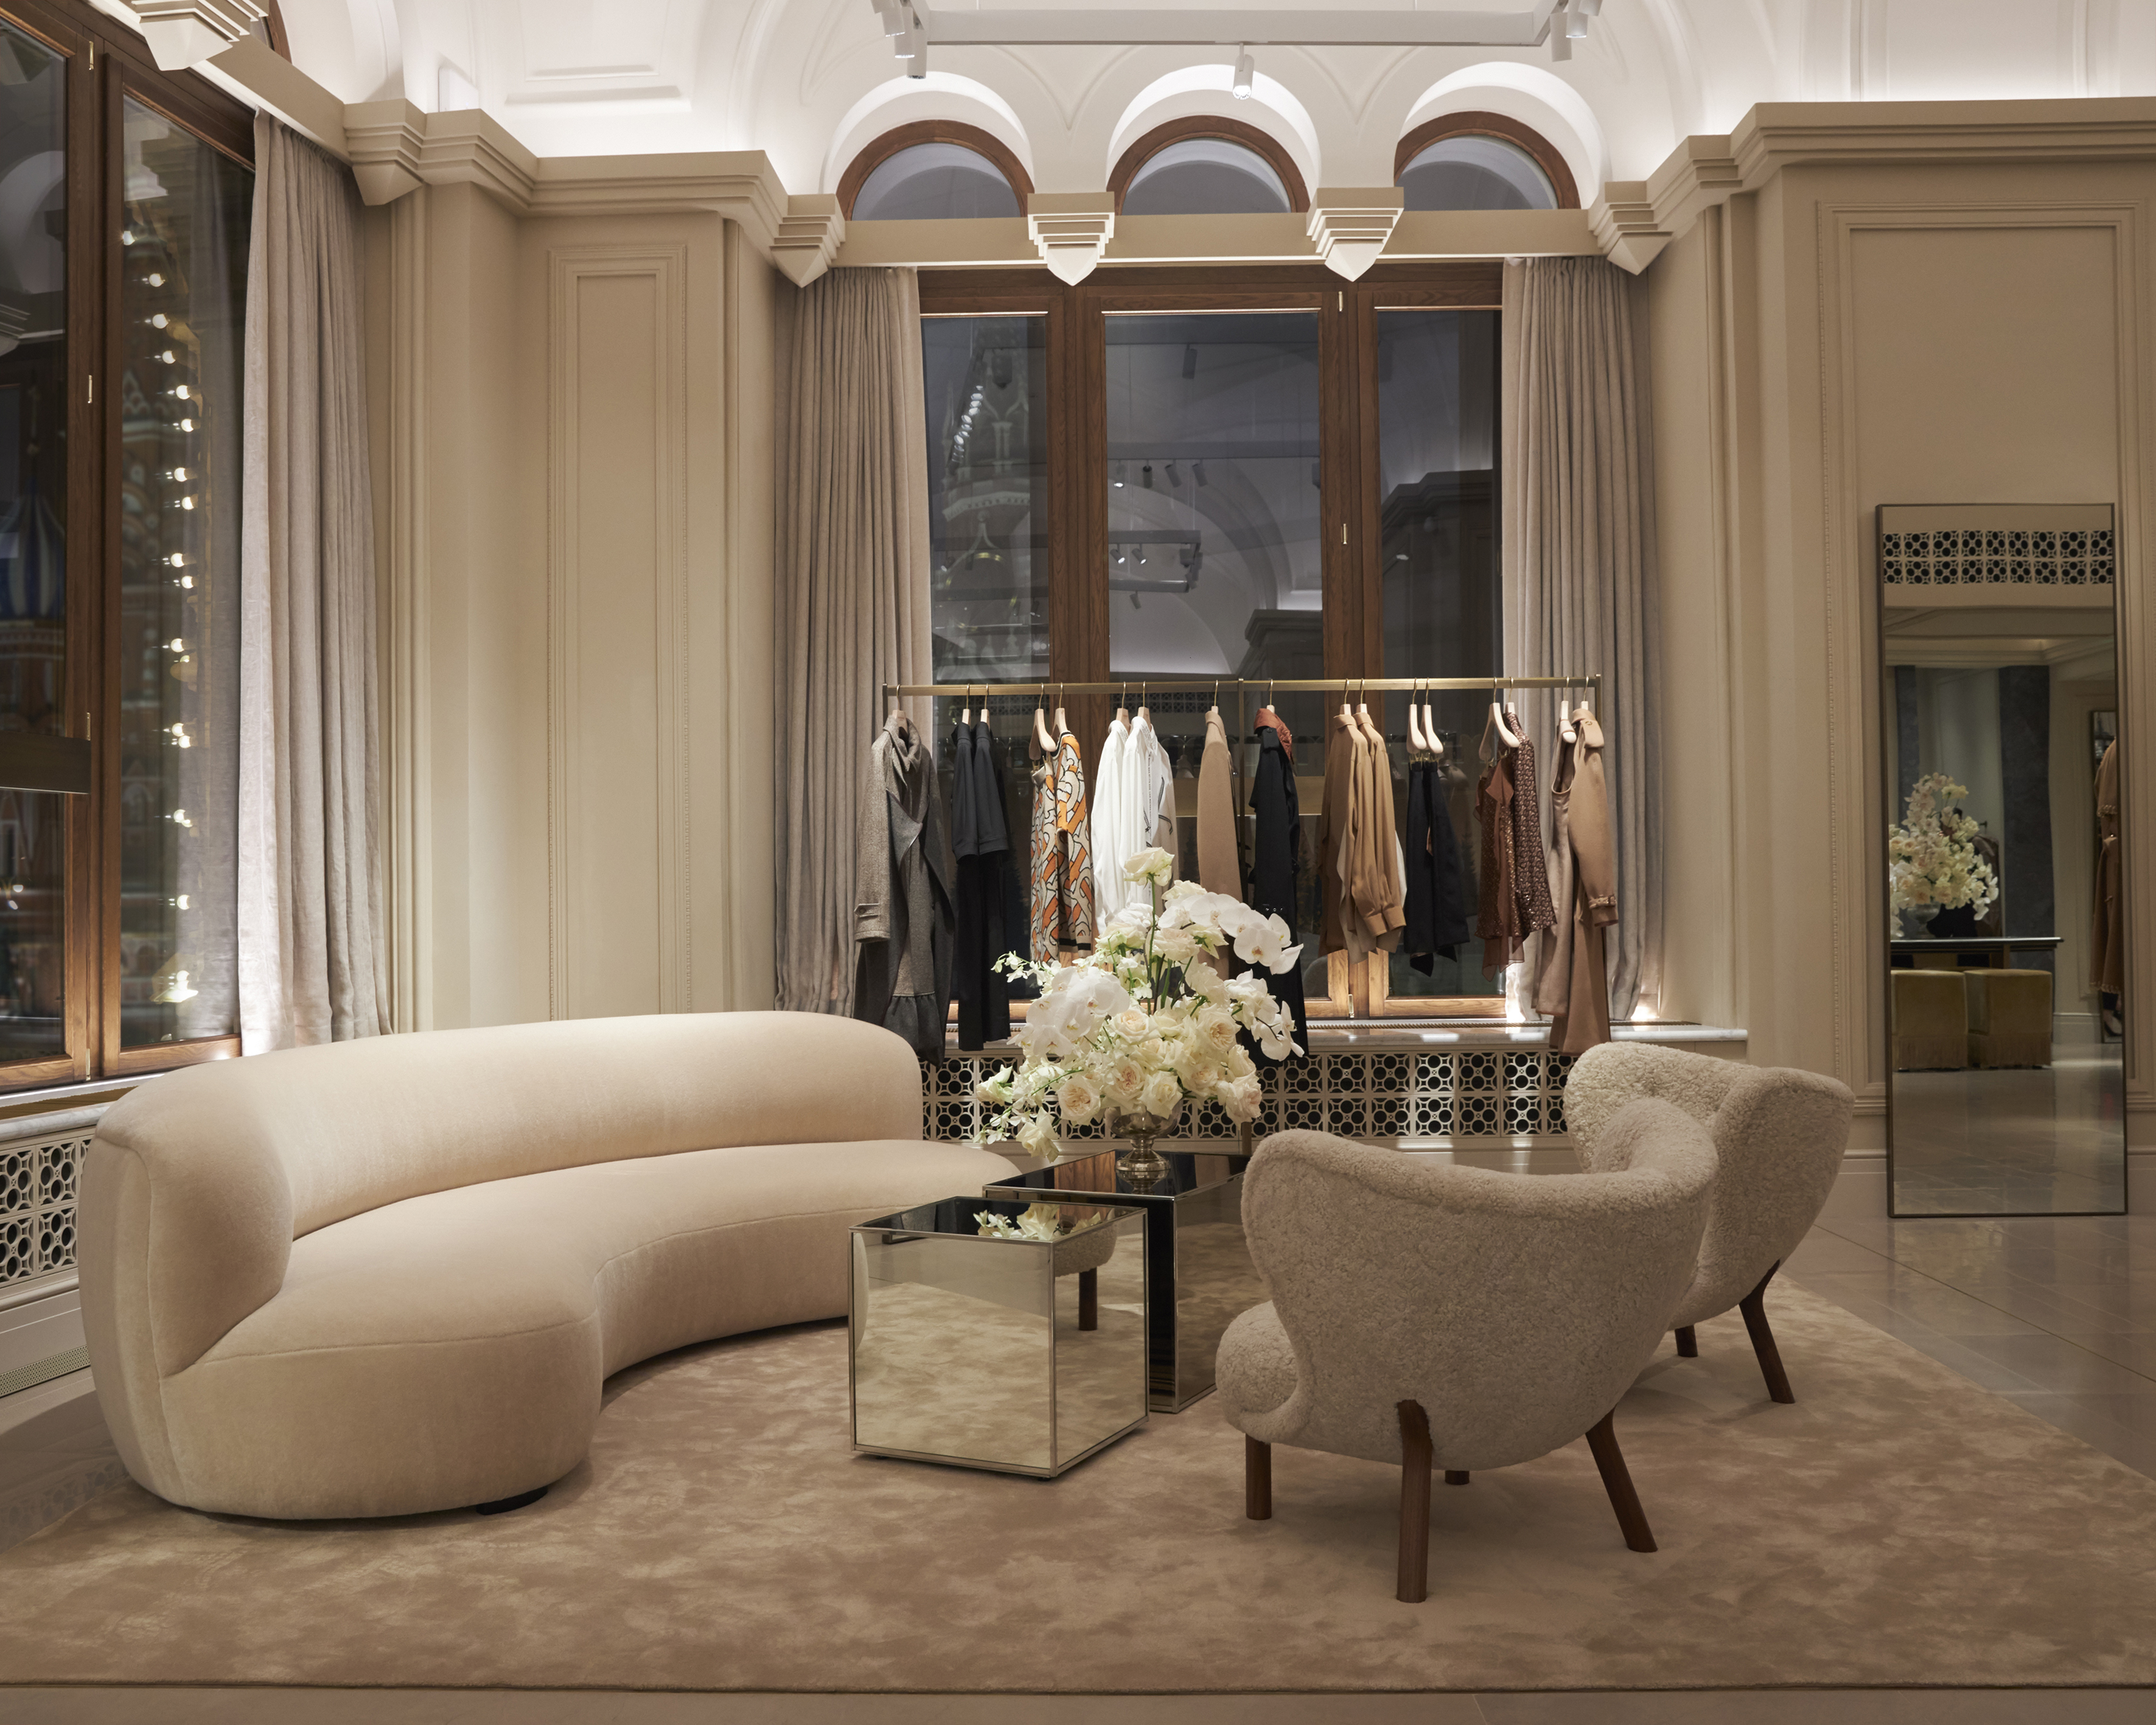 Inside Burberry's store in Gum, Moscow